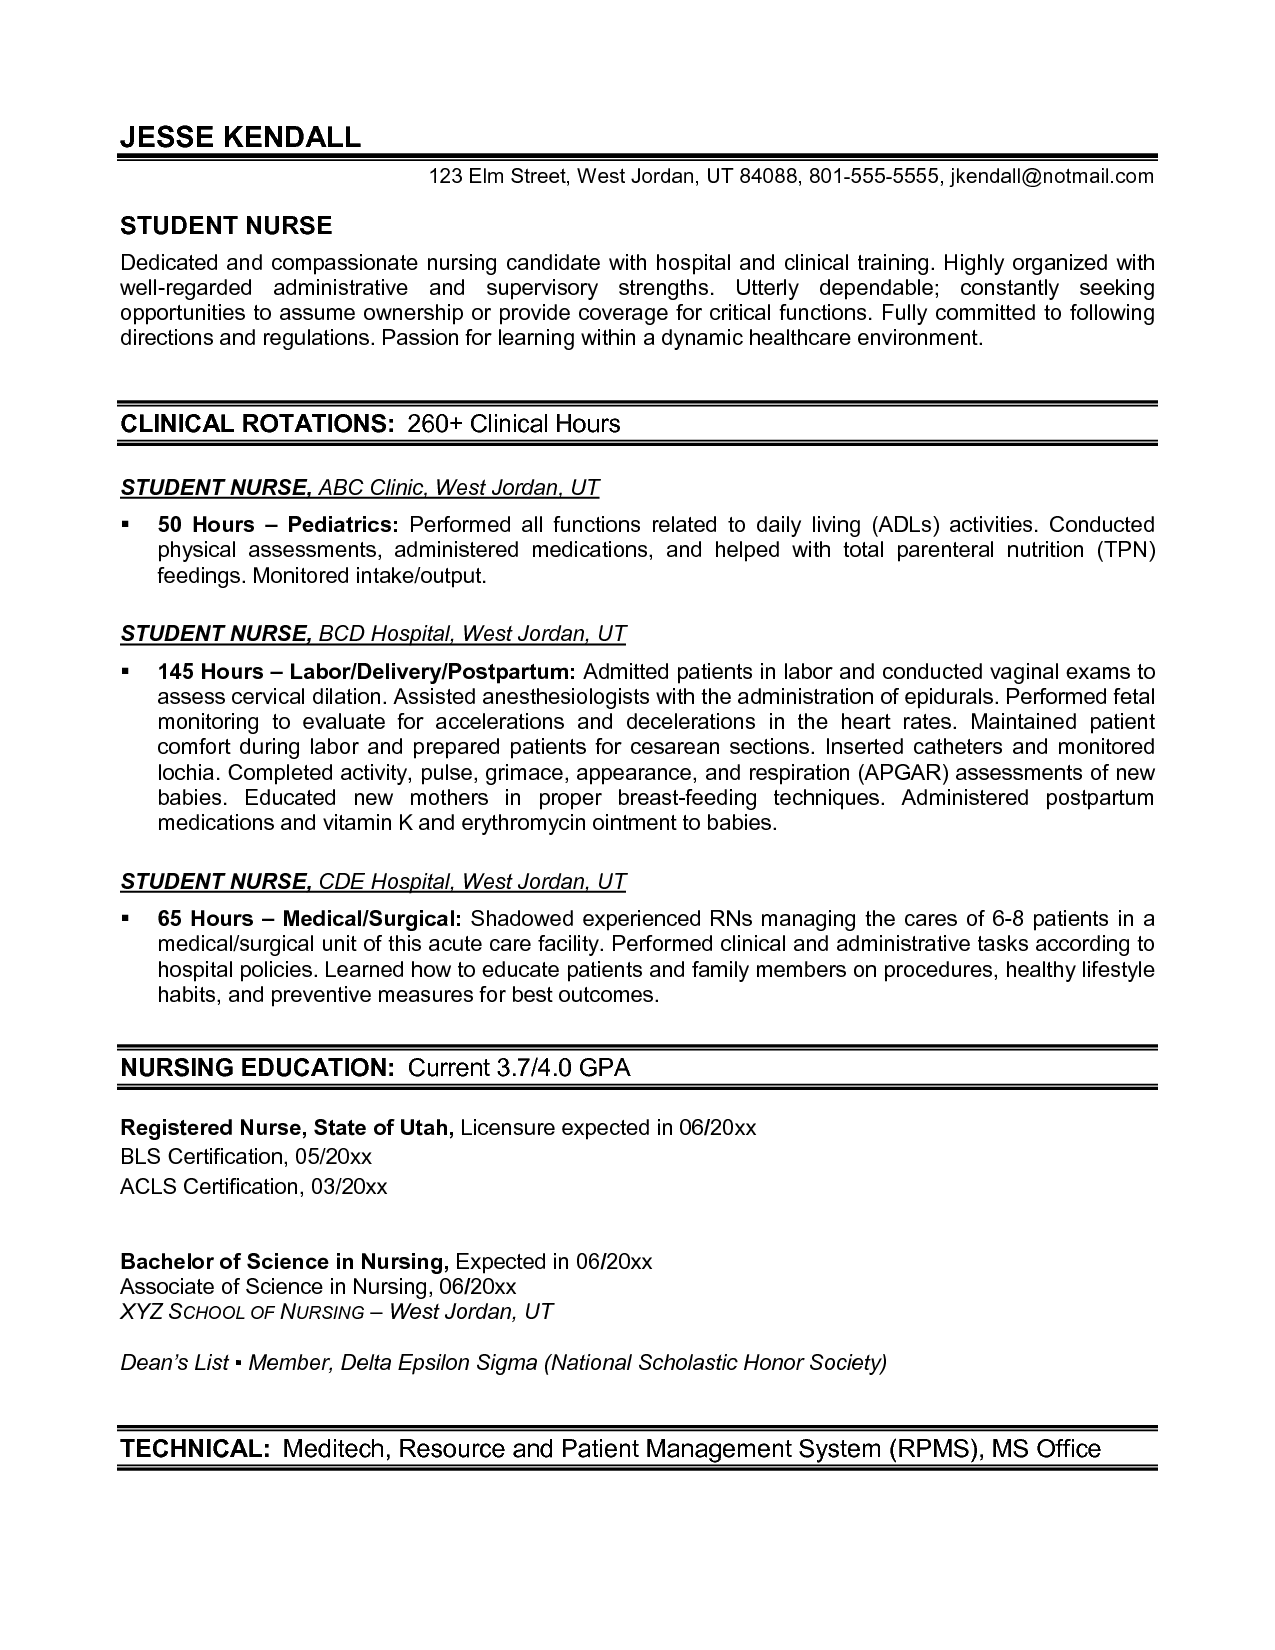 nursing resume template best templateresume templates cover letter examples - Resume Example Nurse